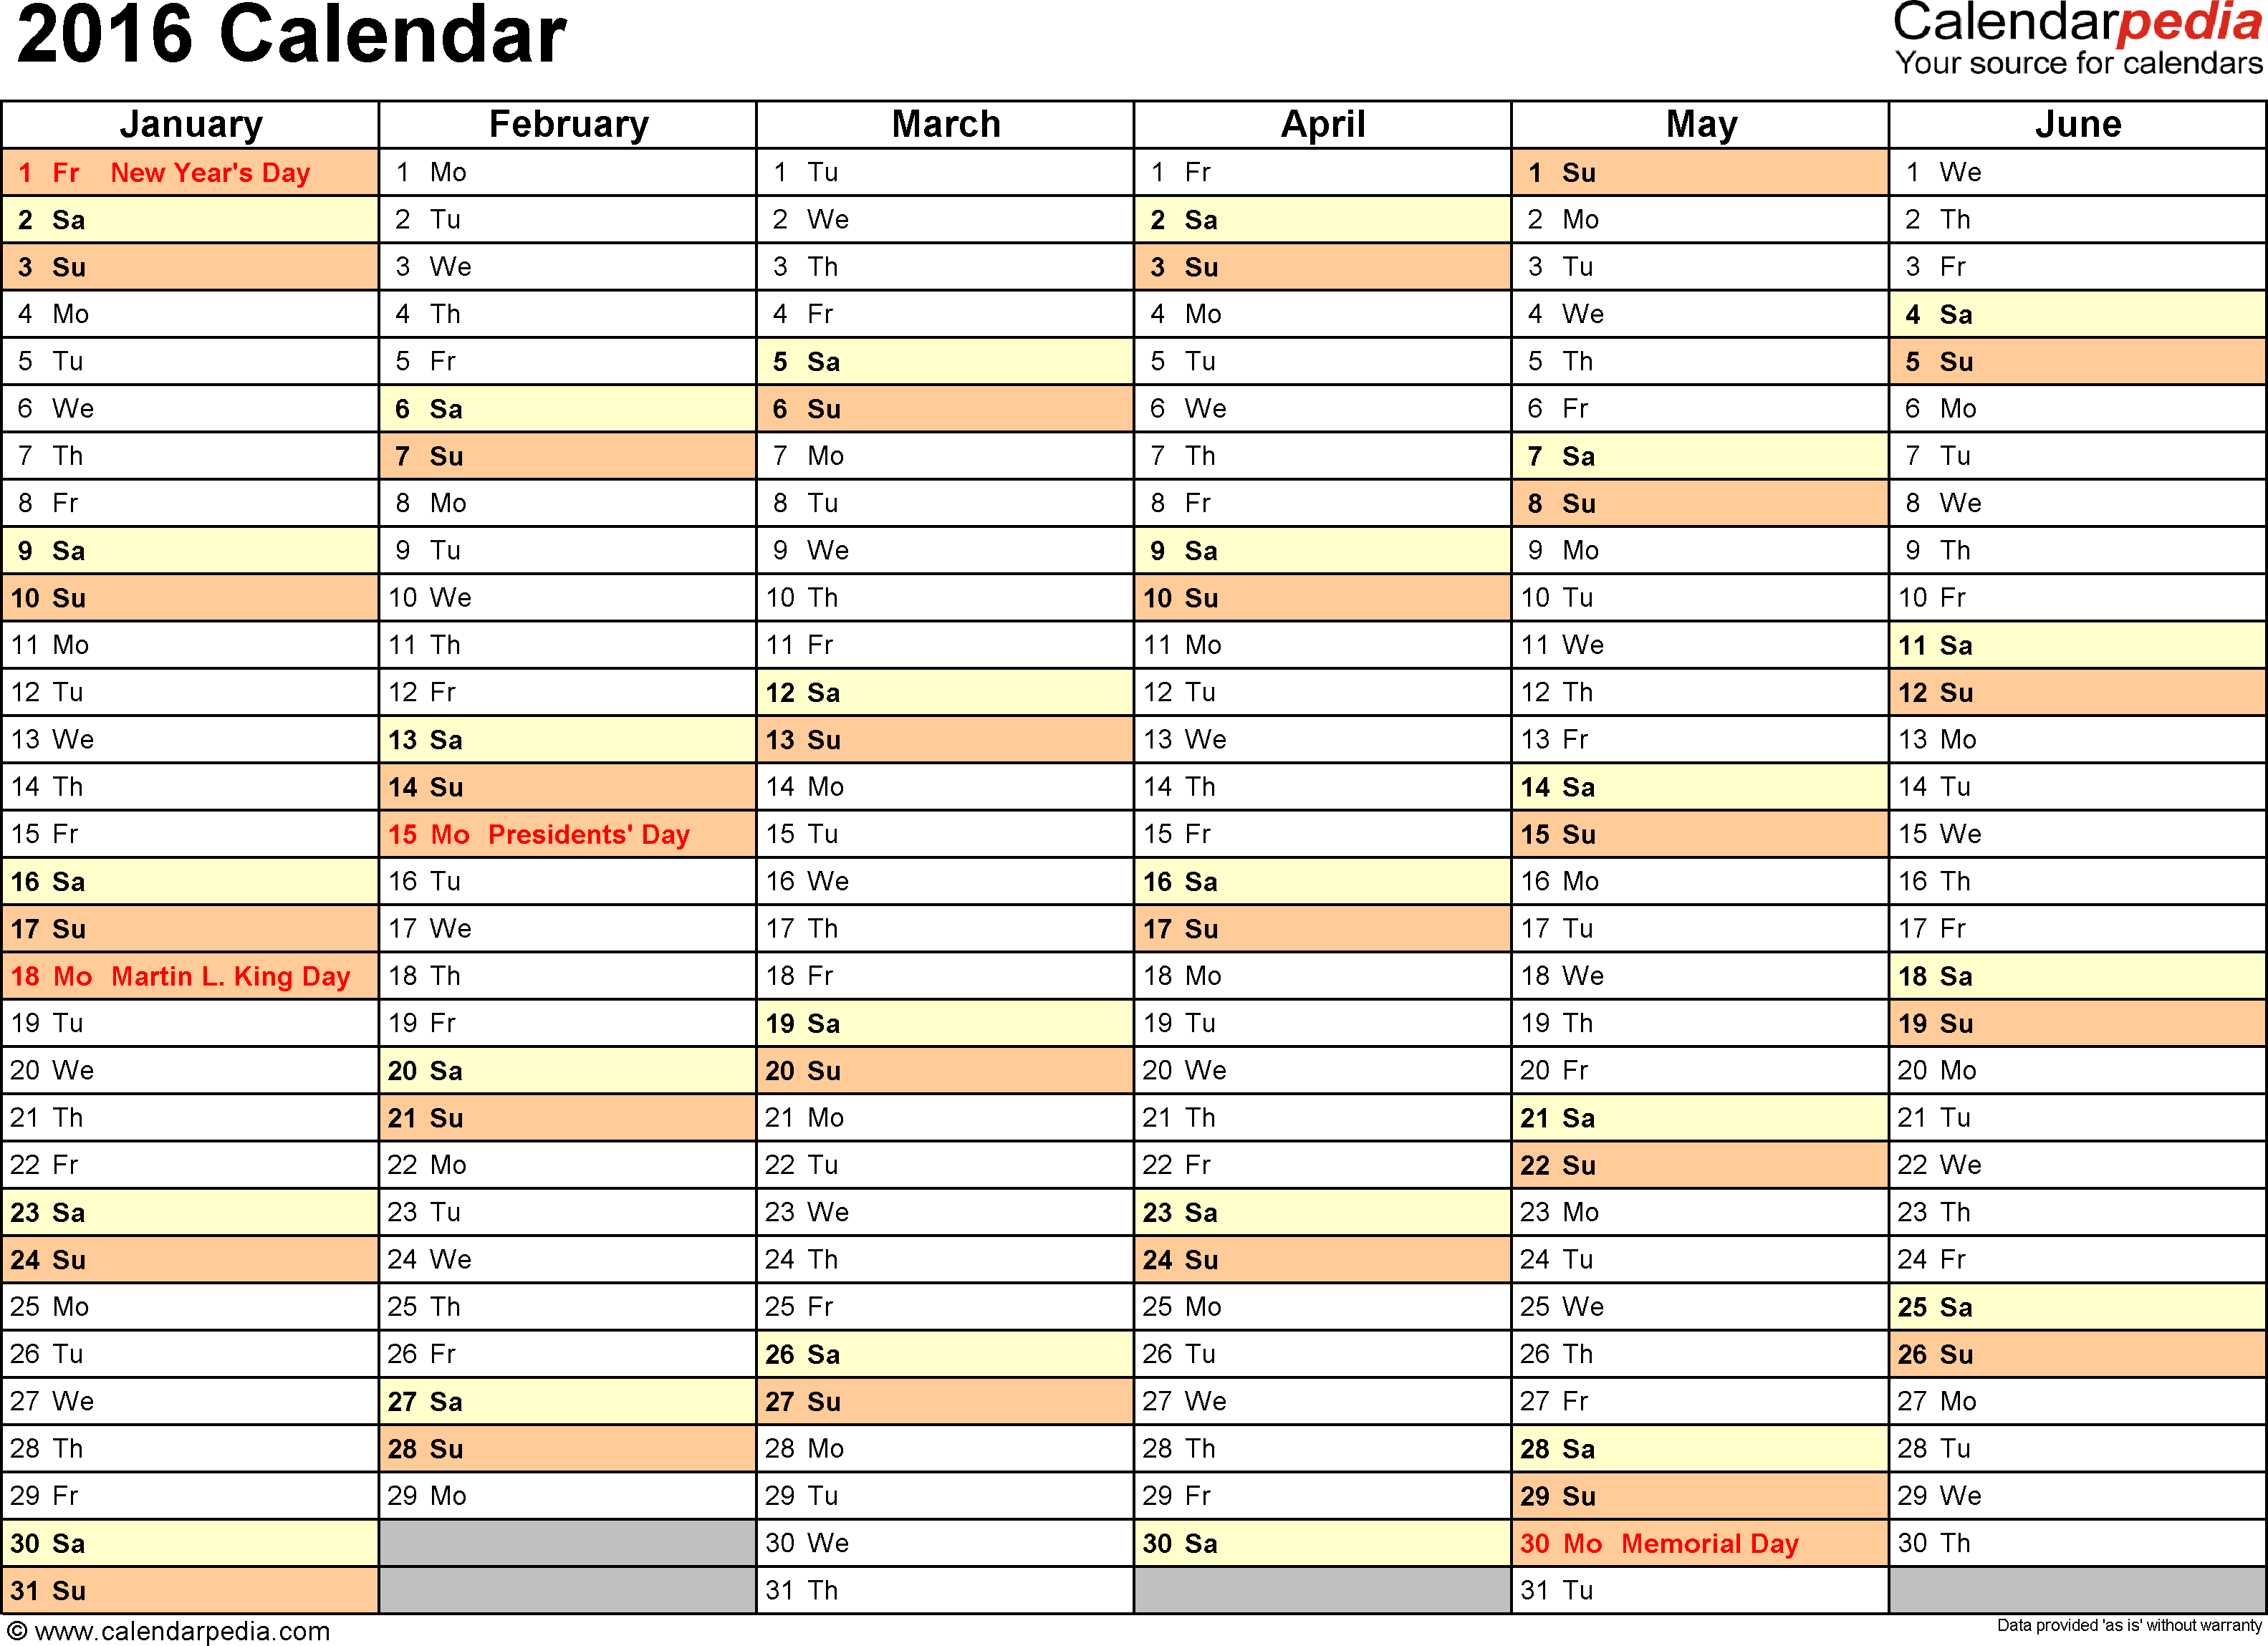 Ediblewildsus  Personable  Calendar  Download  Free Printable Excel Templates Xls With Gorgeous Template   Calendar For Excel Months Horizontally  Pages Landscape Orientation With Breathtaking What Is The Formula For Adding A Column In Excel Also Excel Quartiles In Addition Spreadsheet For Dummies In Excel And Microsoft Excel Software As Well As Export Matlab To Excel Additionally Pie Of Pie Excel  From Calendarpediacom With Ediblewildsus  Gorgeous  Calendar  Download  Free Printable Excel Templates Xls With Breathtaking Template   Calendar For Excel Months Horizontally  Pages Landscape Orientation And Personable What Is The Formula For Adding A Column In Excel Also Excel Quartiles In Addition Spreadsheet For Dummies In Excel From Calendarpediacom